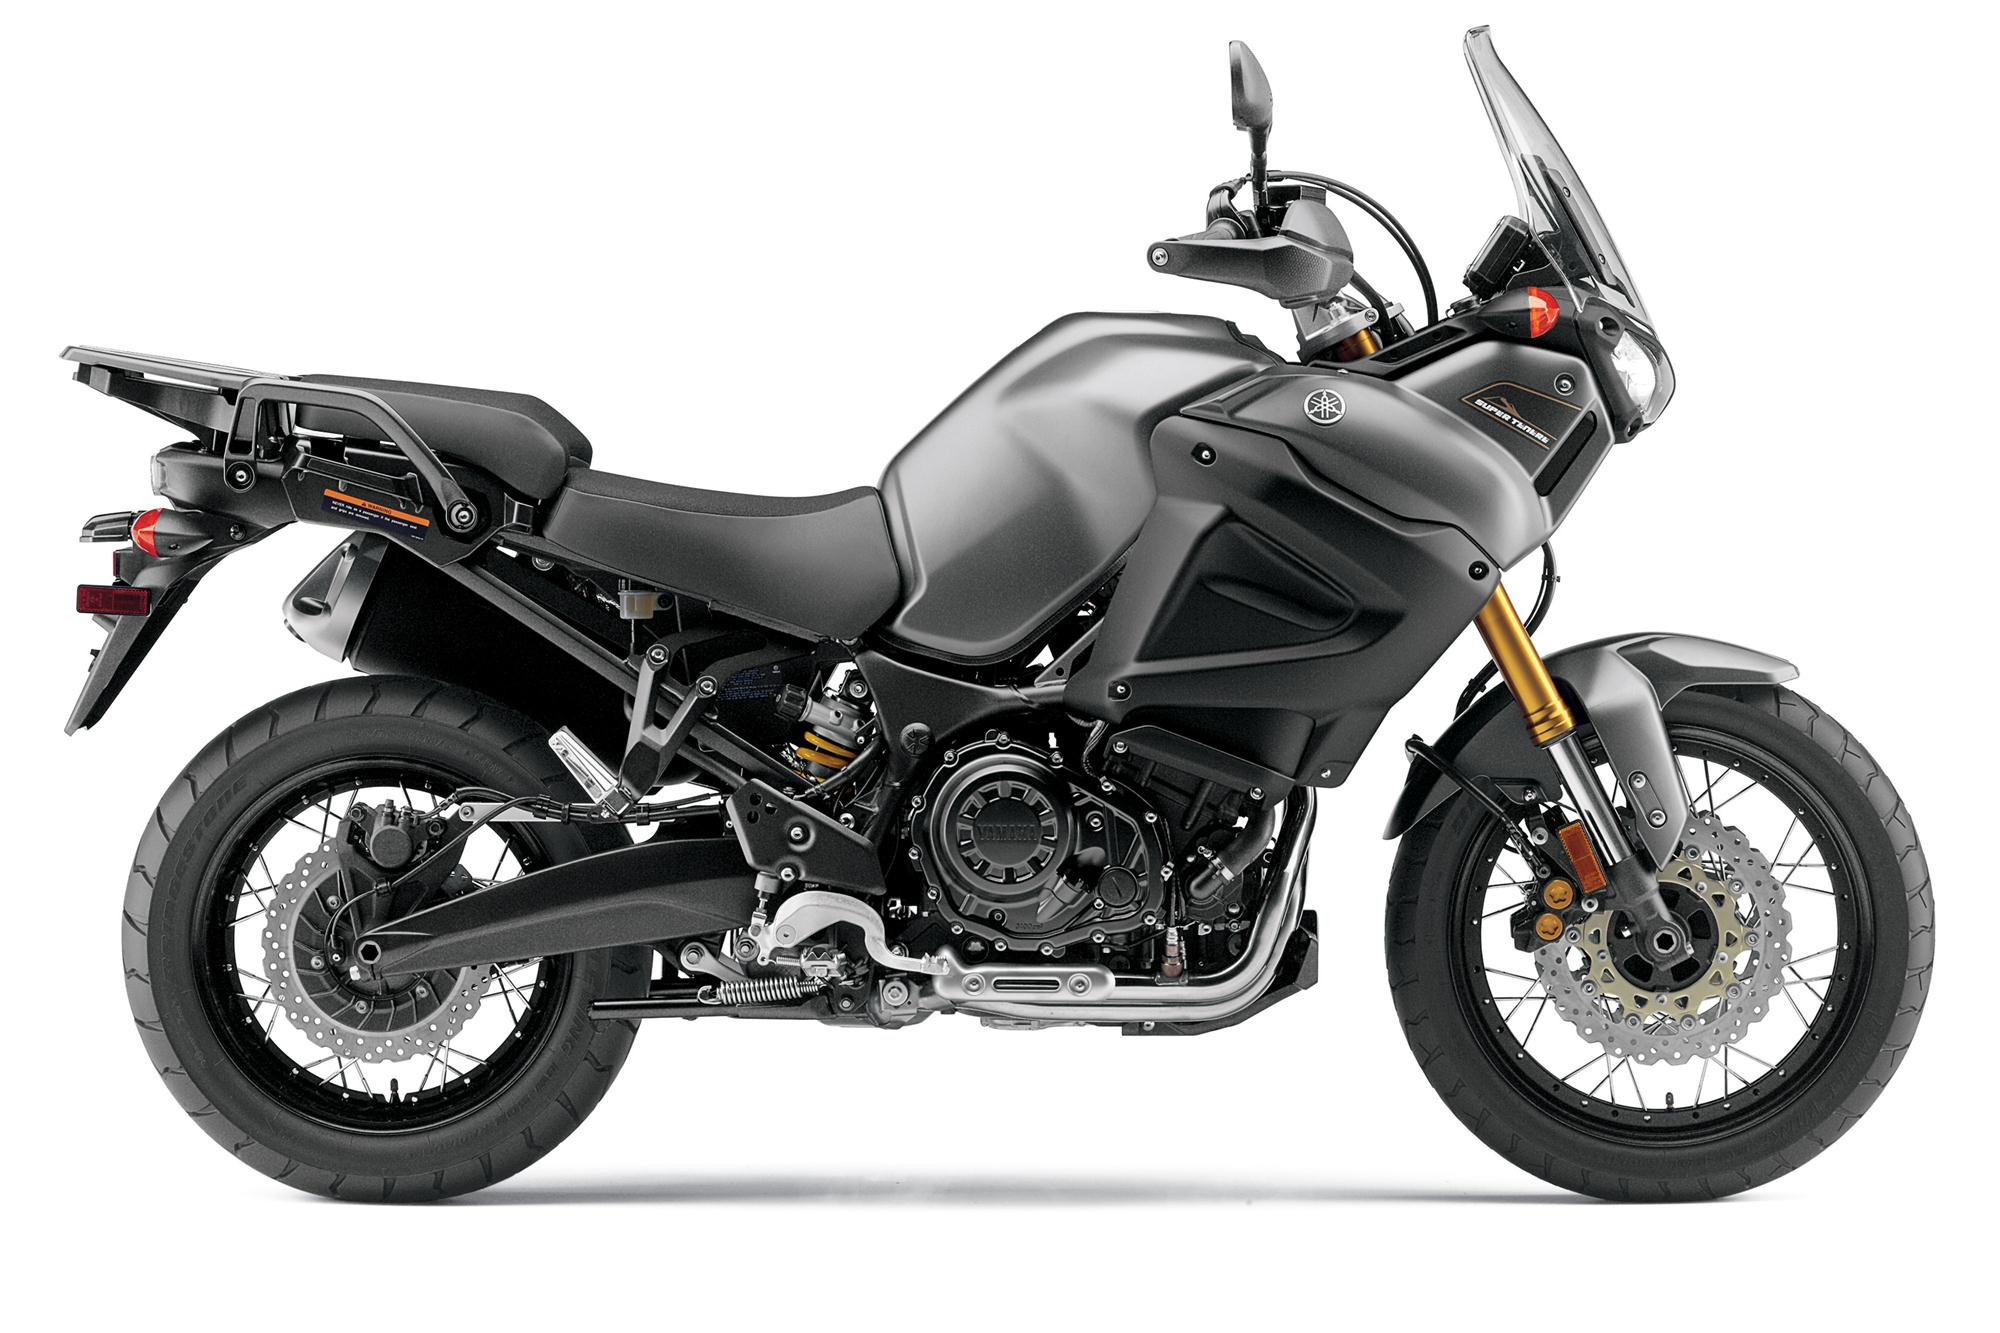 yamaha xt1200z super tenere fiche technique avis et prix la poign e dans l 39 angle. Black Bedroom Furniture Sets. Home Design Ideas